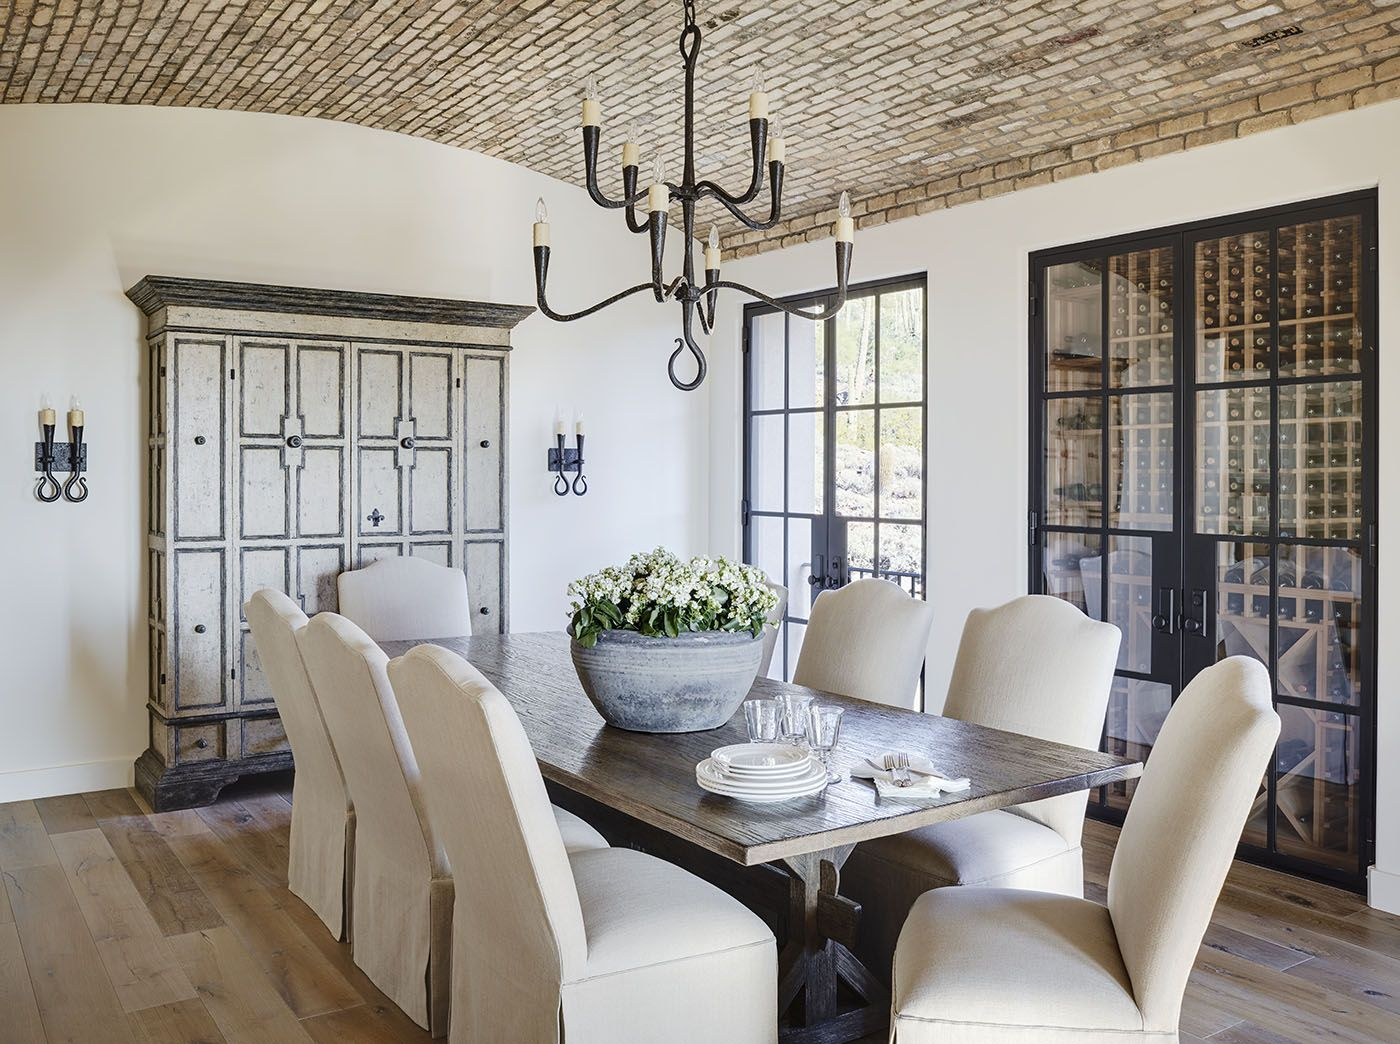 luxury dining room with brick barrel vault ceiling